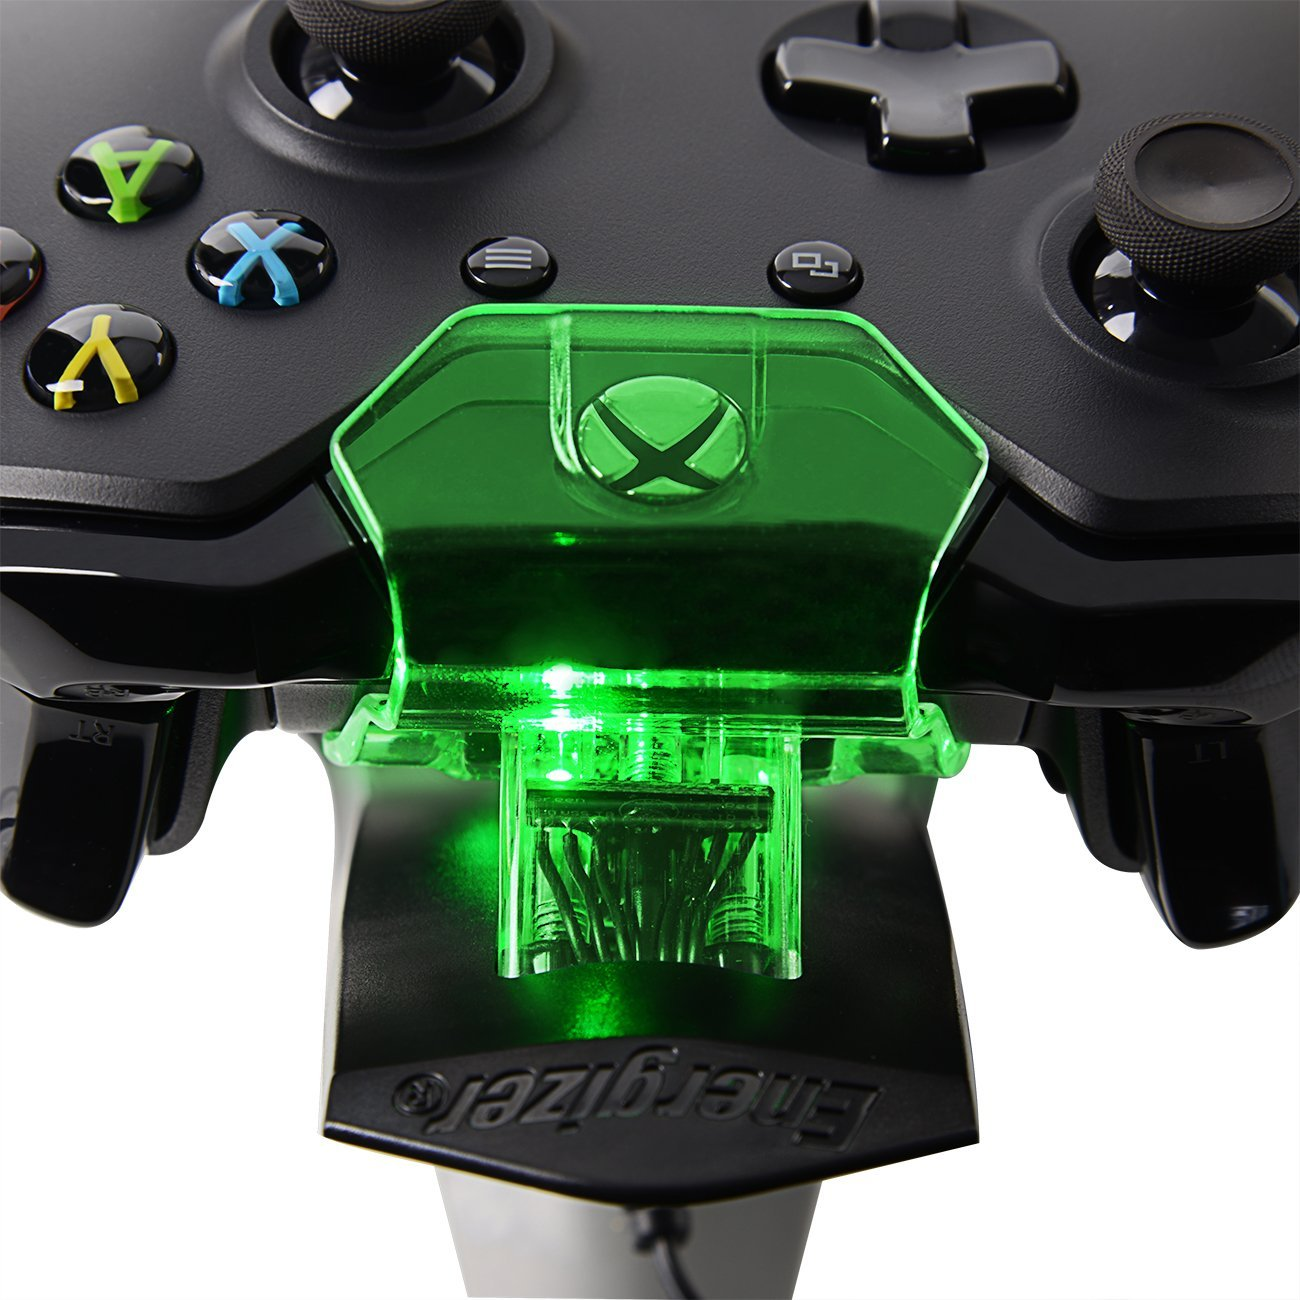 Best Xbox One Accessories?